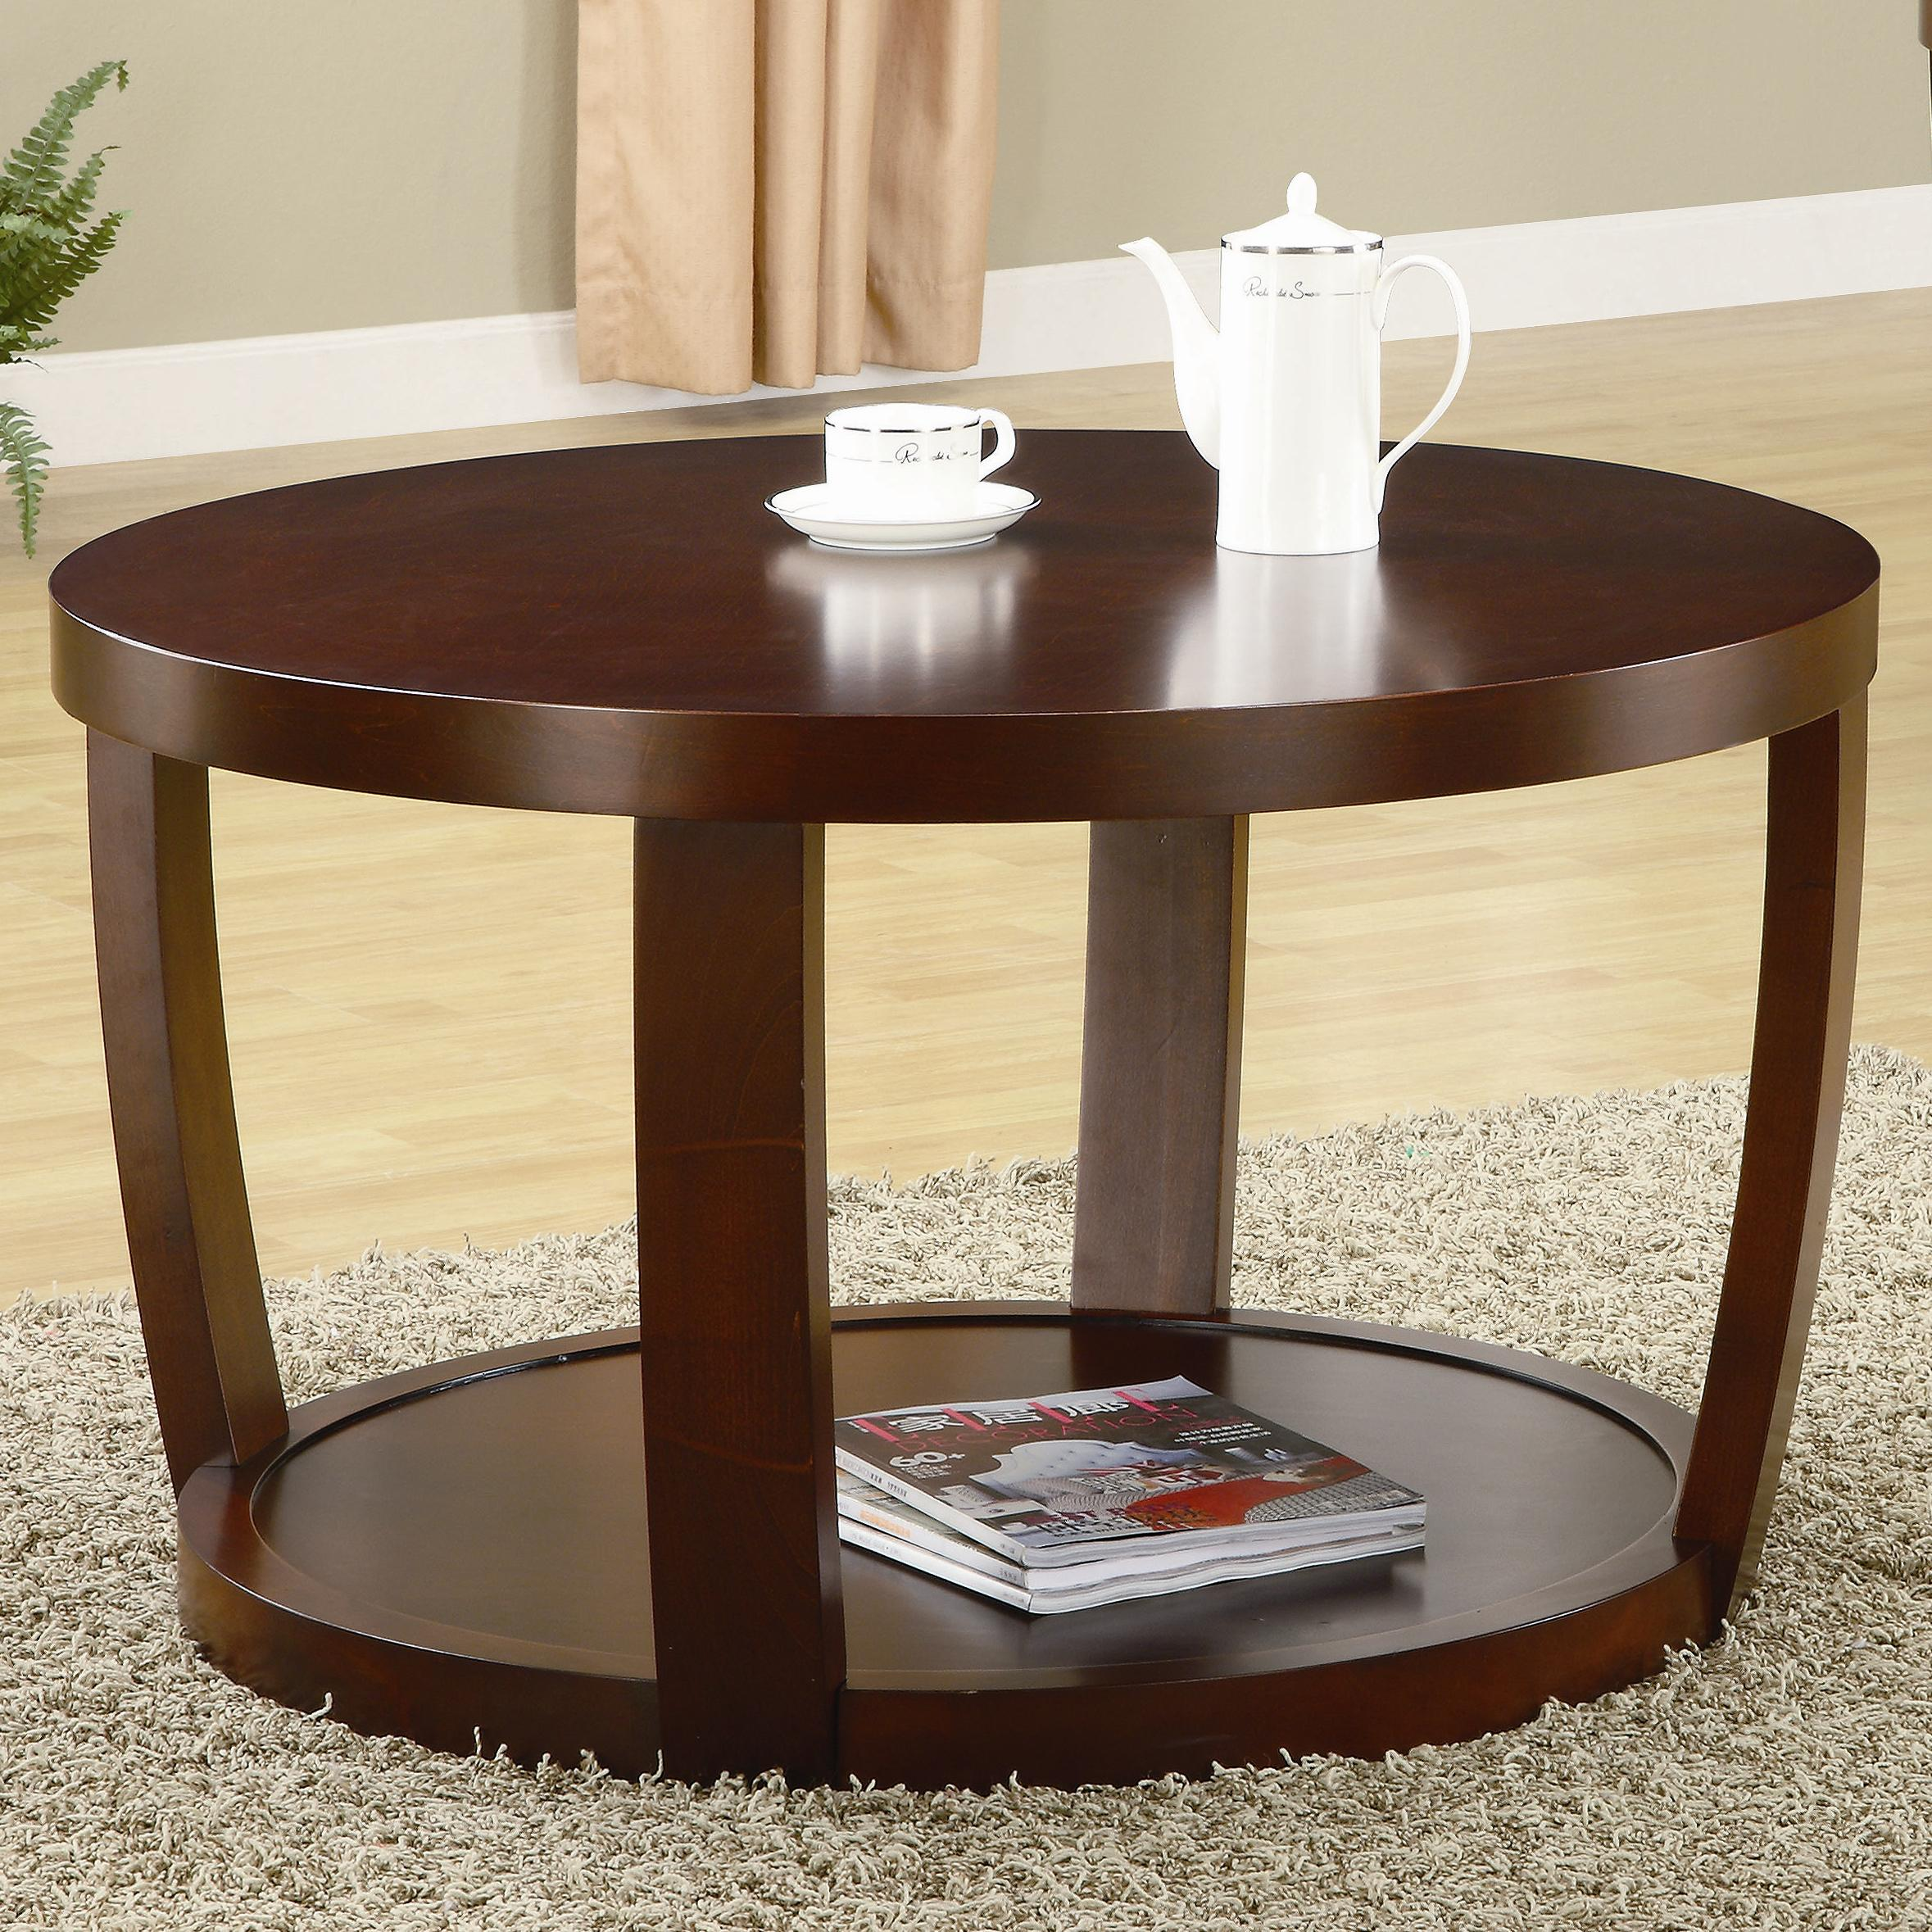 Furniture Living Room Furniture Coffee Table Round Cherry Finished Coffee Table